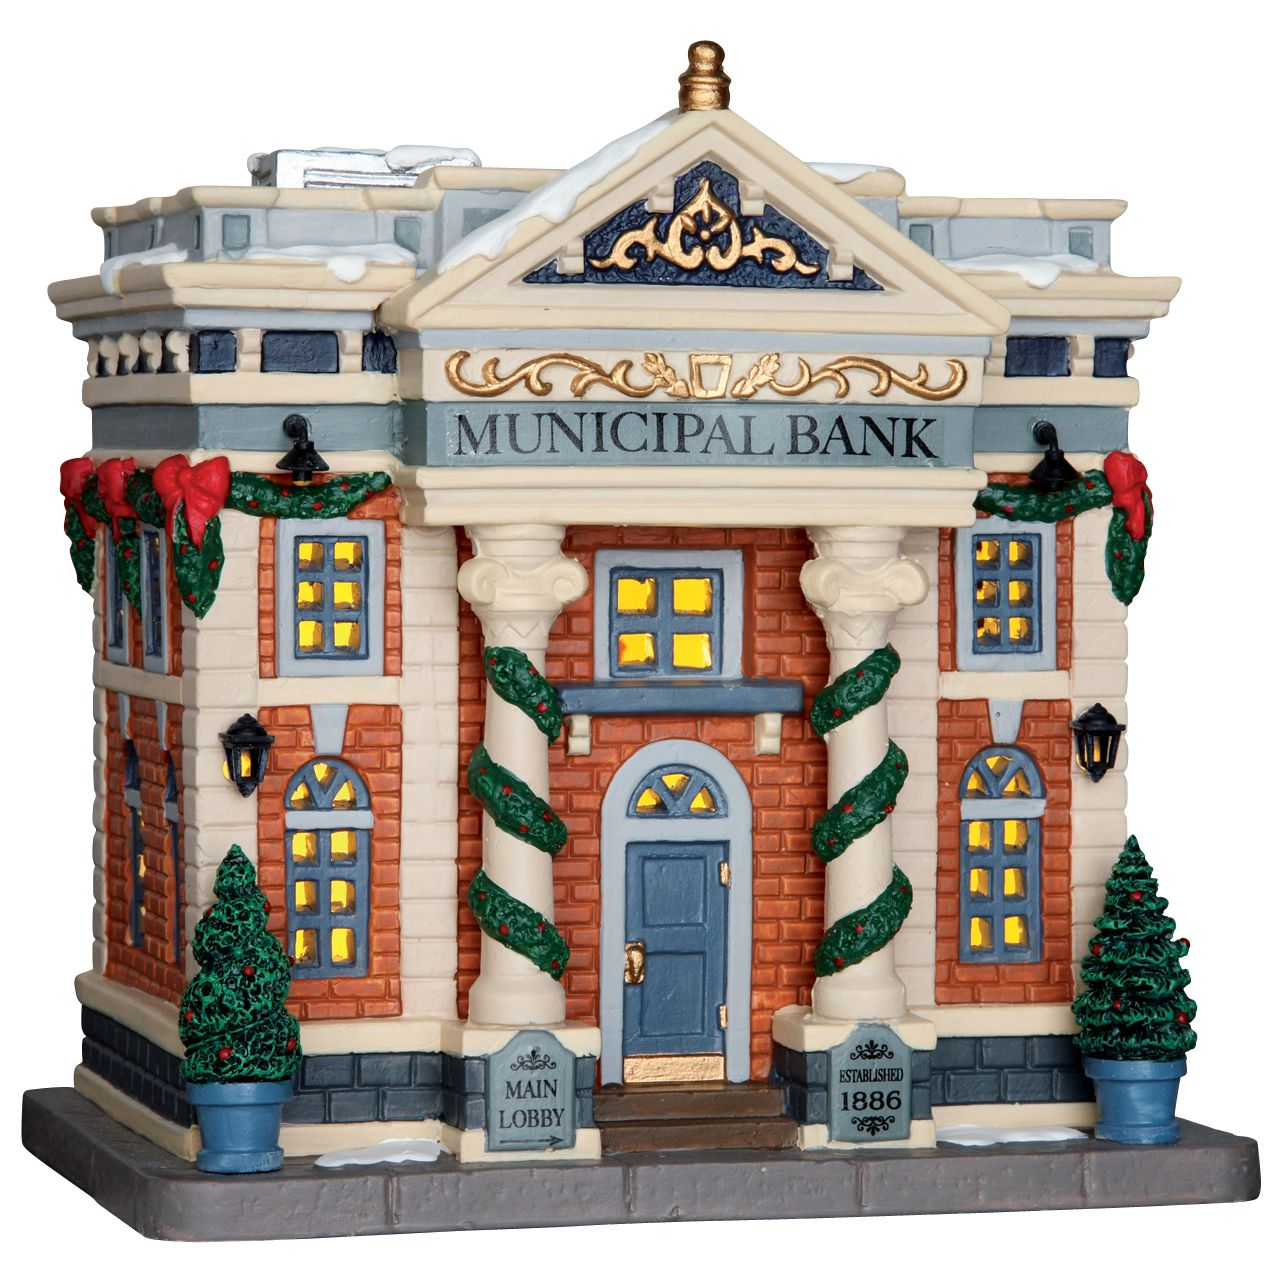 Lemax Municipal Bank. SKU 65082. Released in 2016 as a